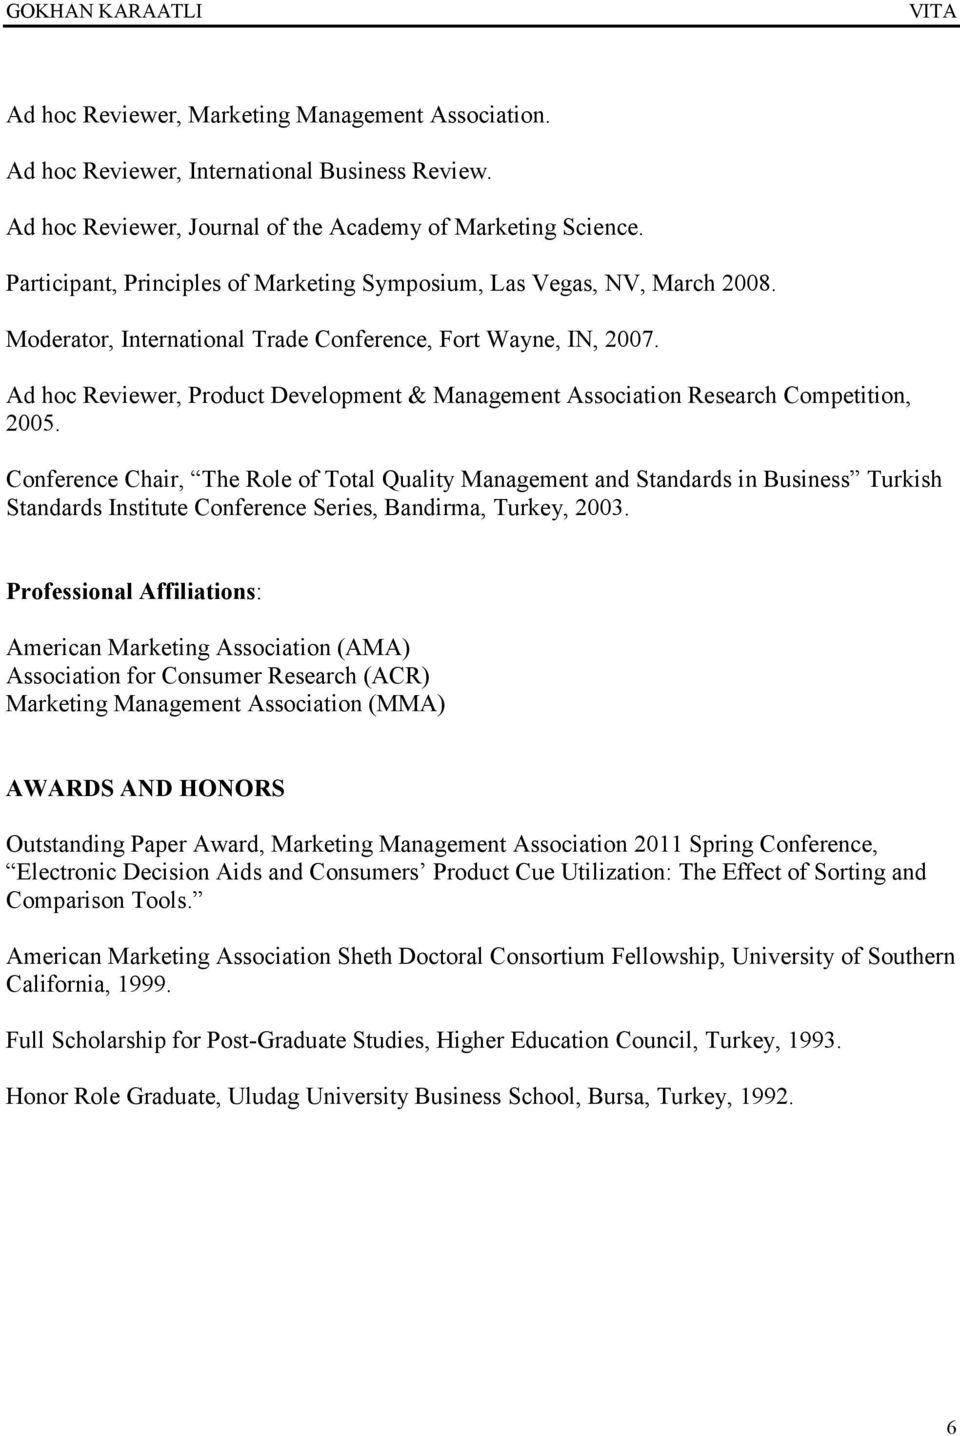 Ad hoc Reviewer, Product Development & Management Association Research Competition, 2005.